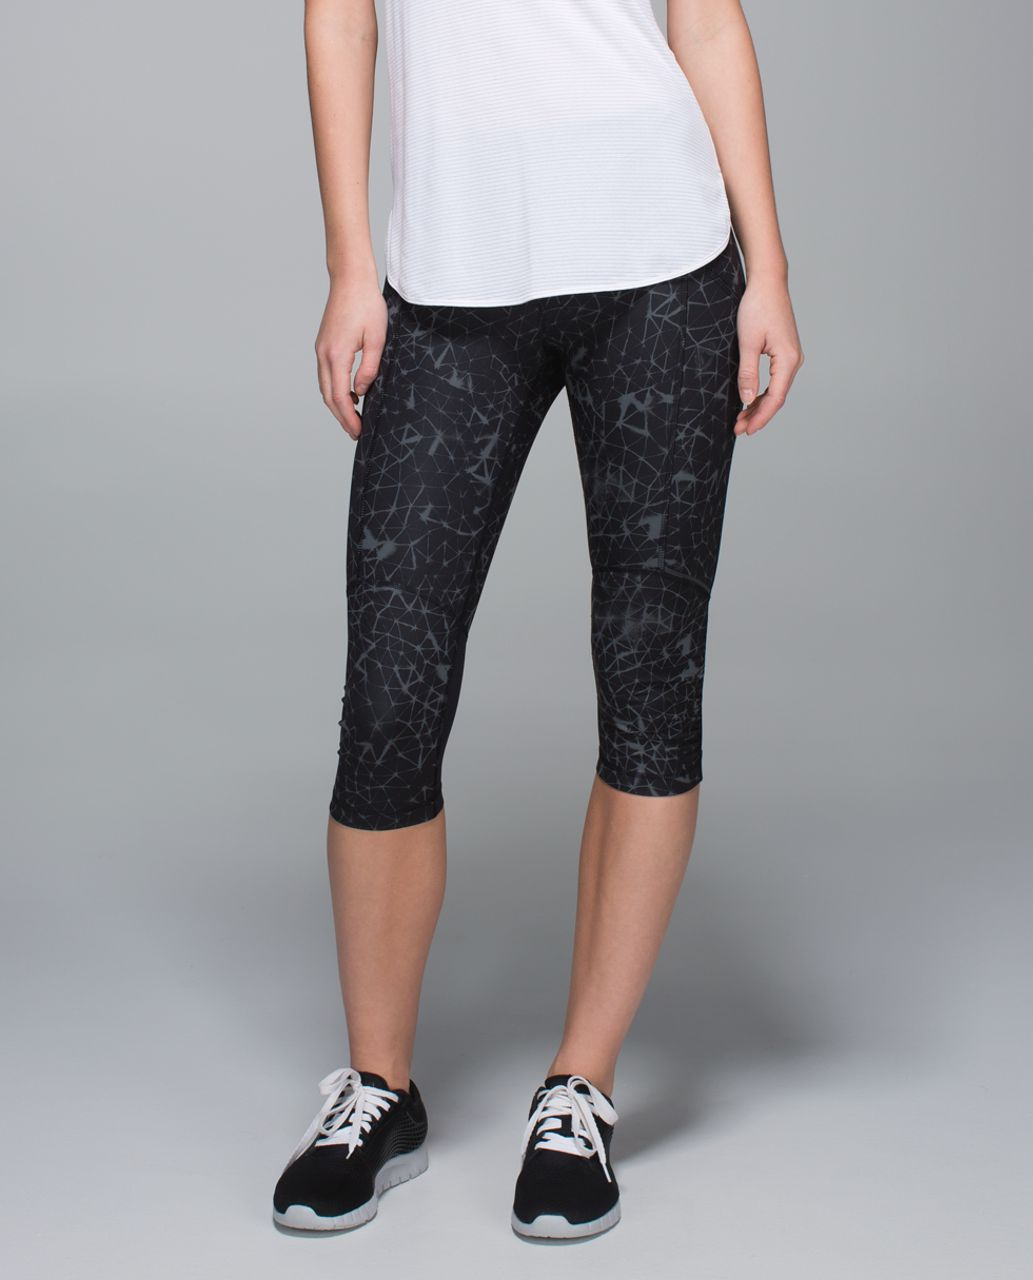 Lululemon Stash It Crop *Full-On Luxtreme - Star Crushed Coal Black / Black